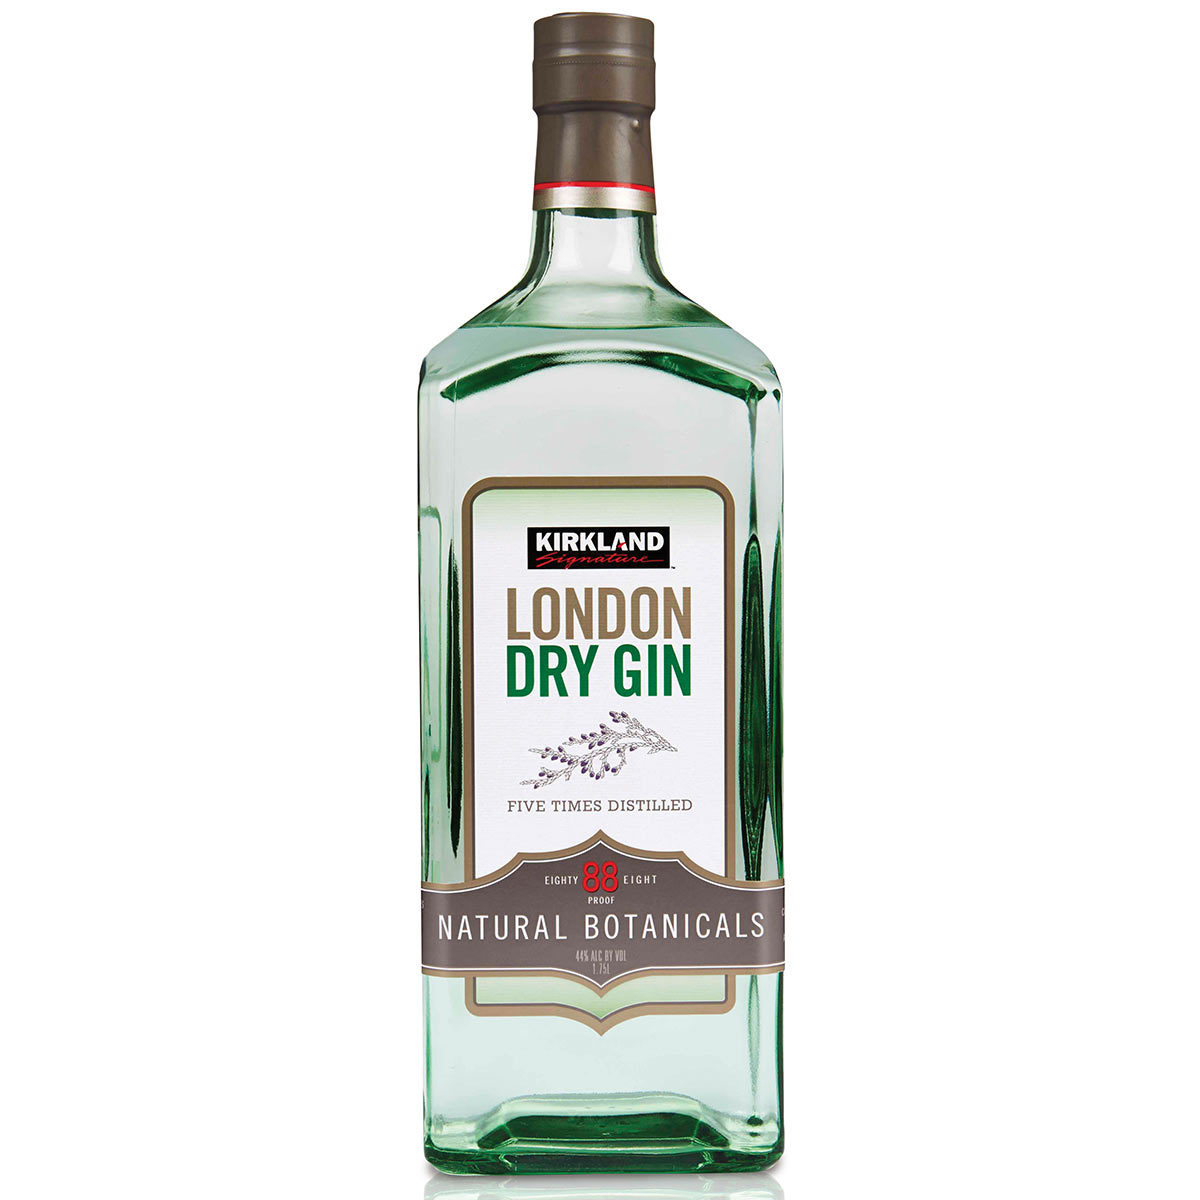 Kirkland London Dry Gin